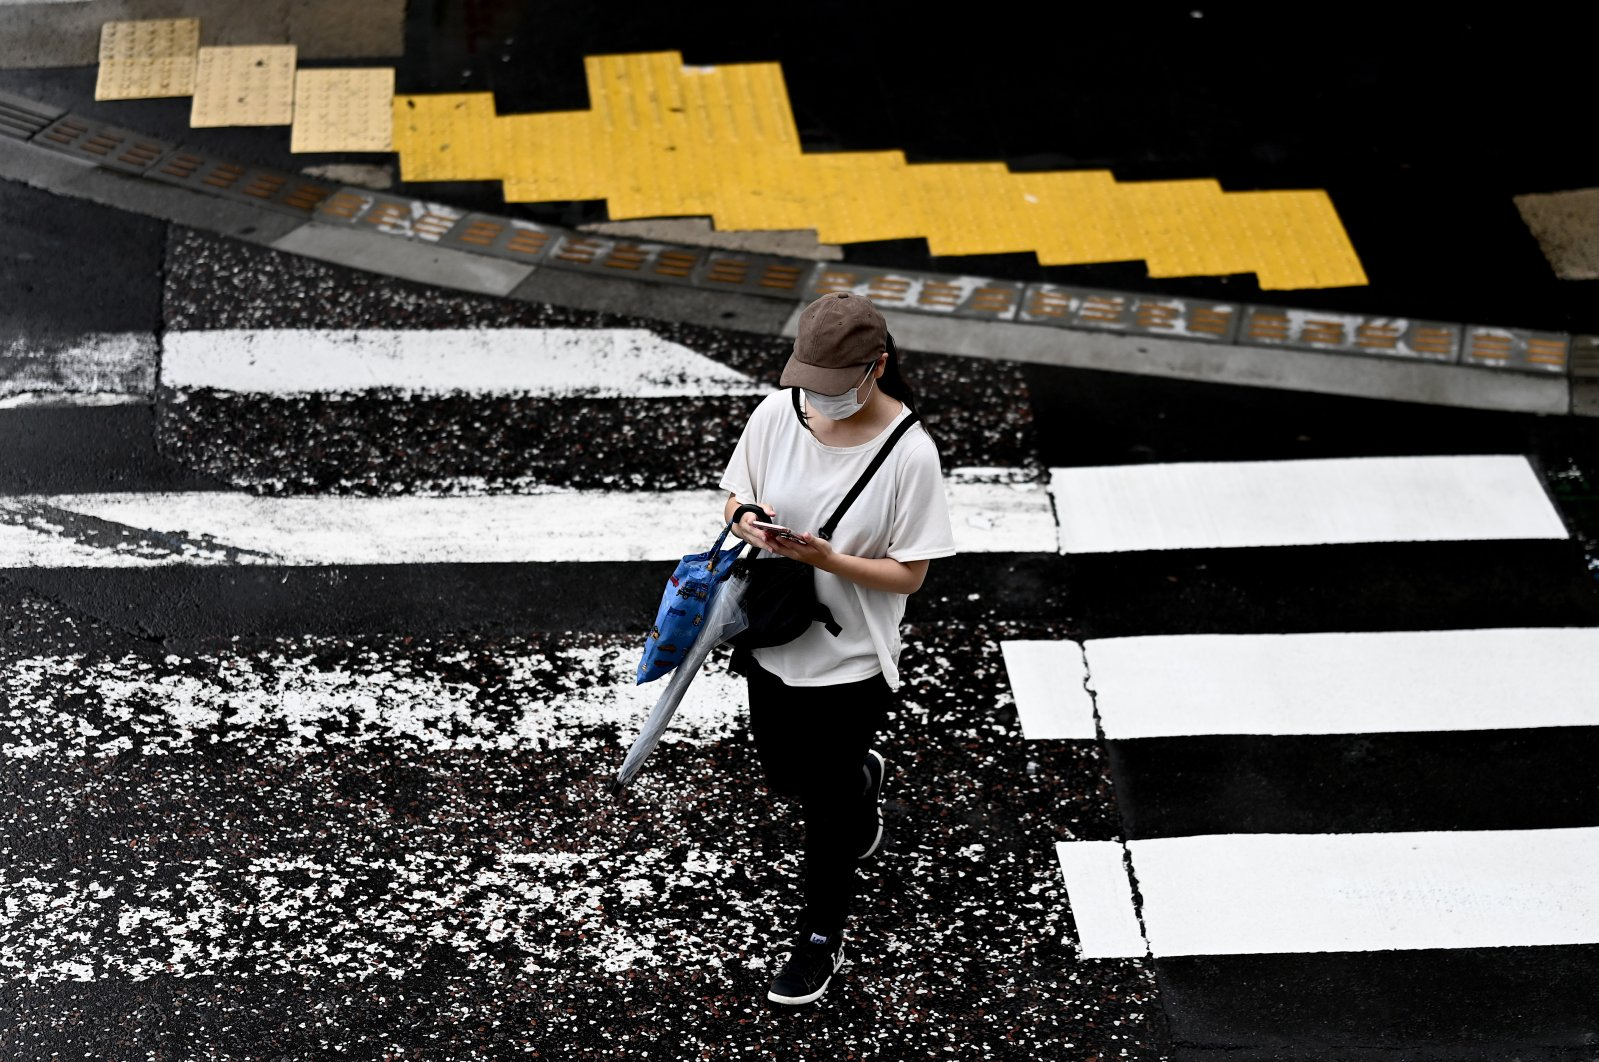 A woman uses her phone while crossing a street in Yamato, Kanagawa prefecture, July 1, 2020. (AFP Photo)